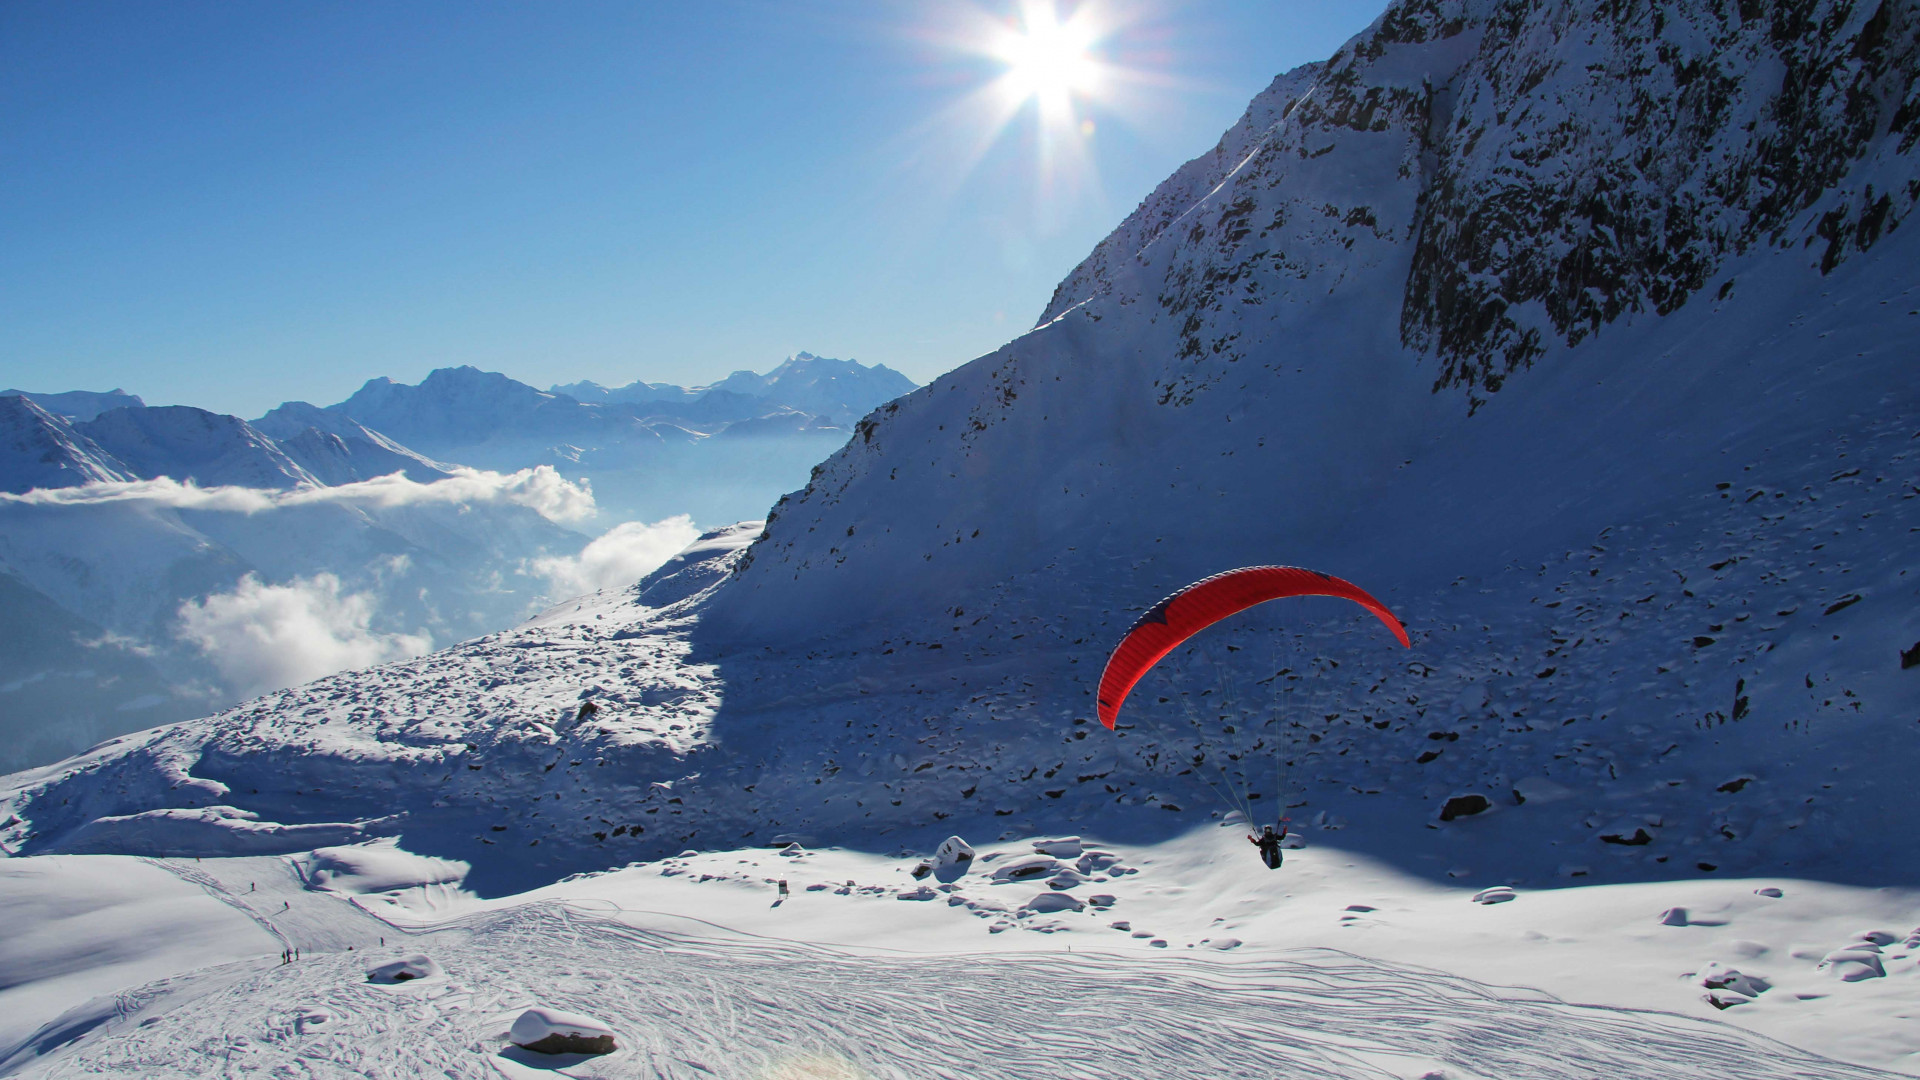 Paragliding in the Aletsch Arena, Valais, Switzerland